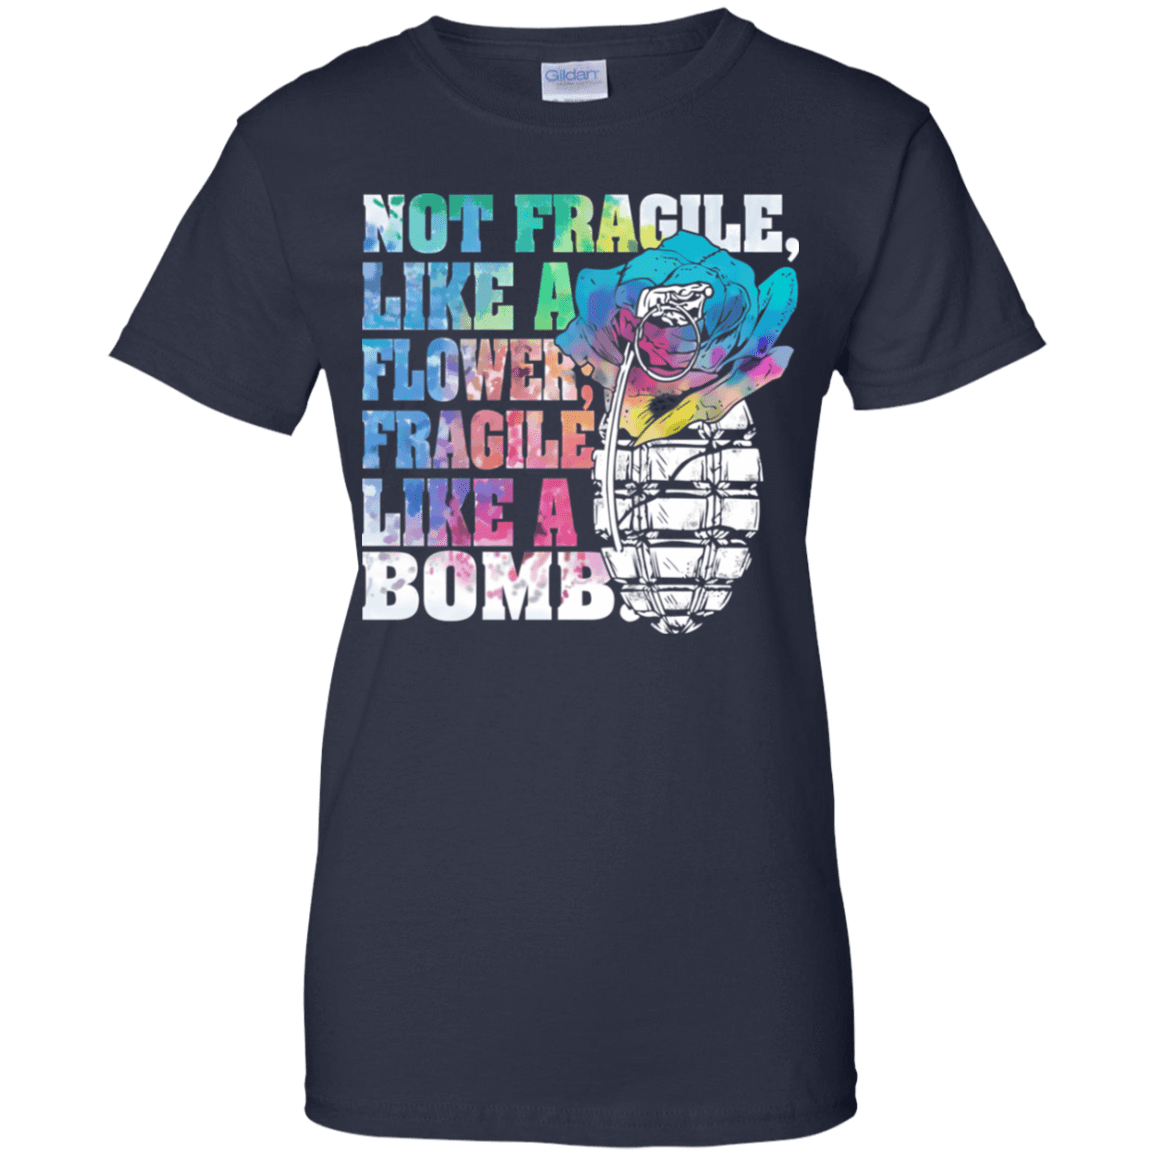 Not Fragile Like A Flower, Fragile Like A Bomb 939-9259-73170840-44765 - Tee Ript